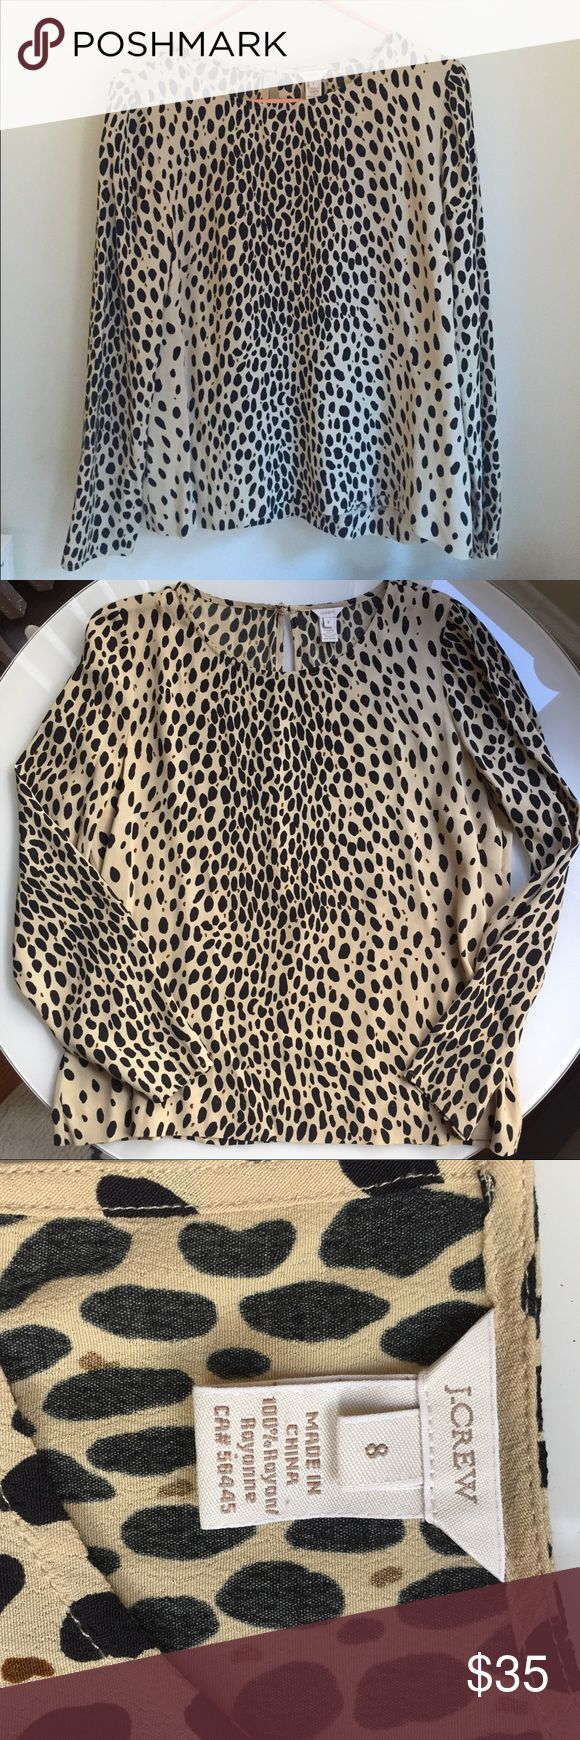 J. Crew Sassy Animal Print Blouse 🐆 Love this blouse! Animal print. Excellent used condition. Very flowy material and great for work and summer. All offers considered! Bundle and save ☺️ J. Crew Tops Blouses